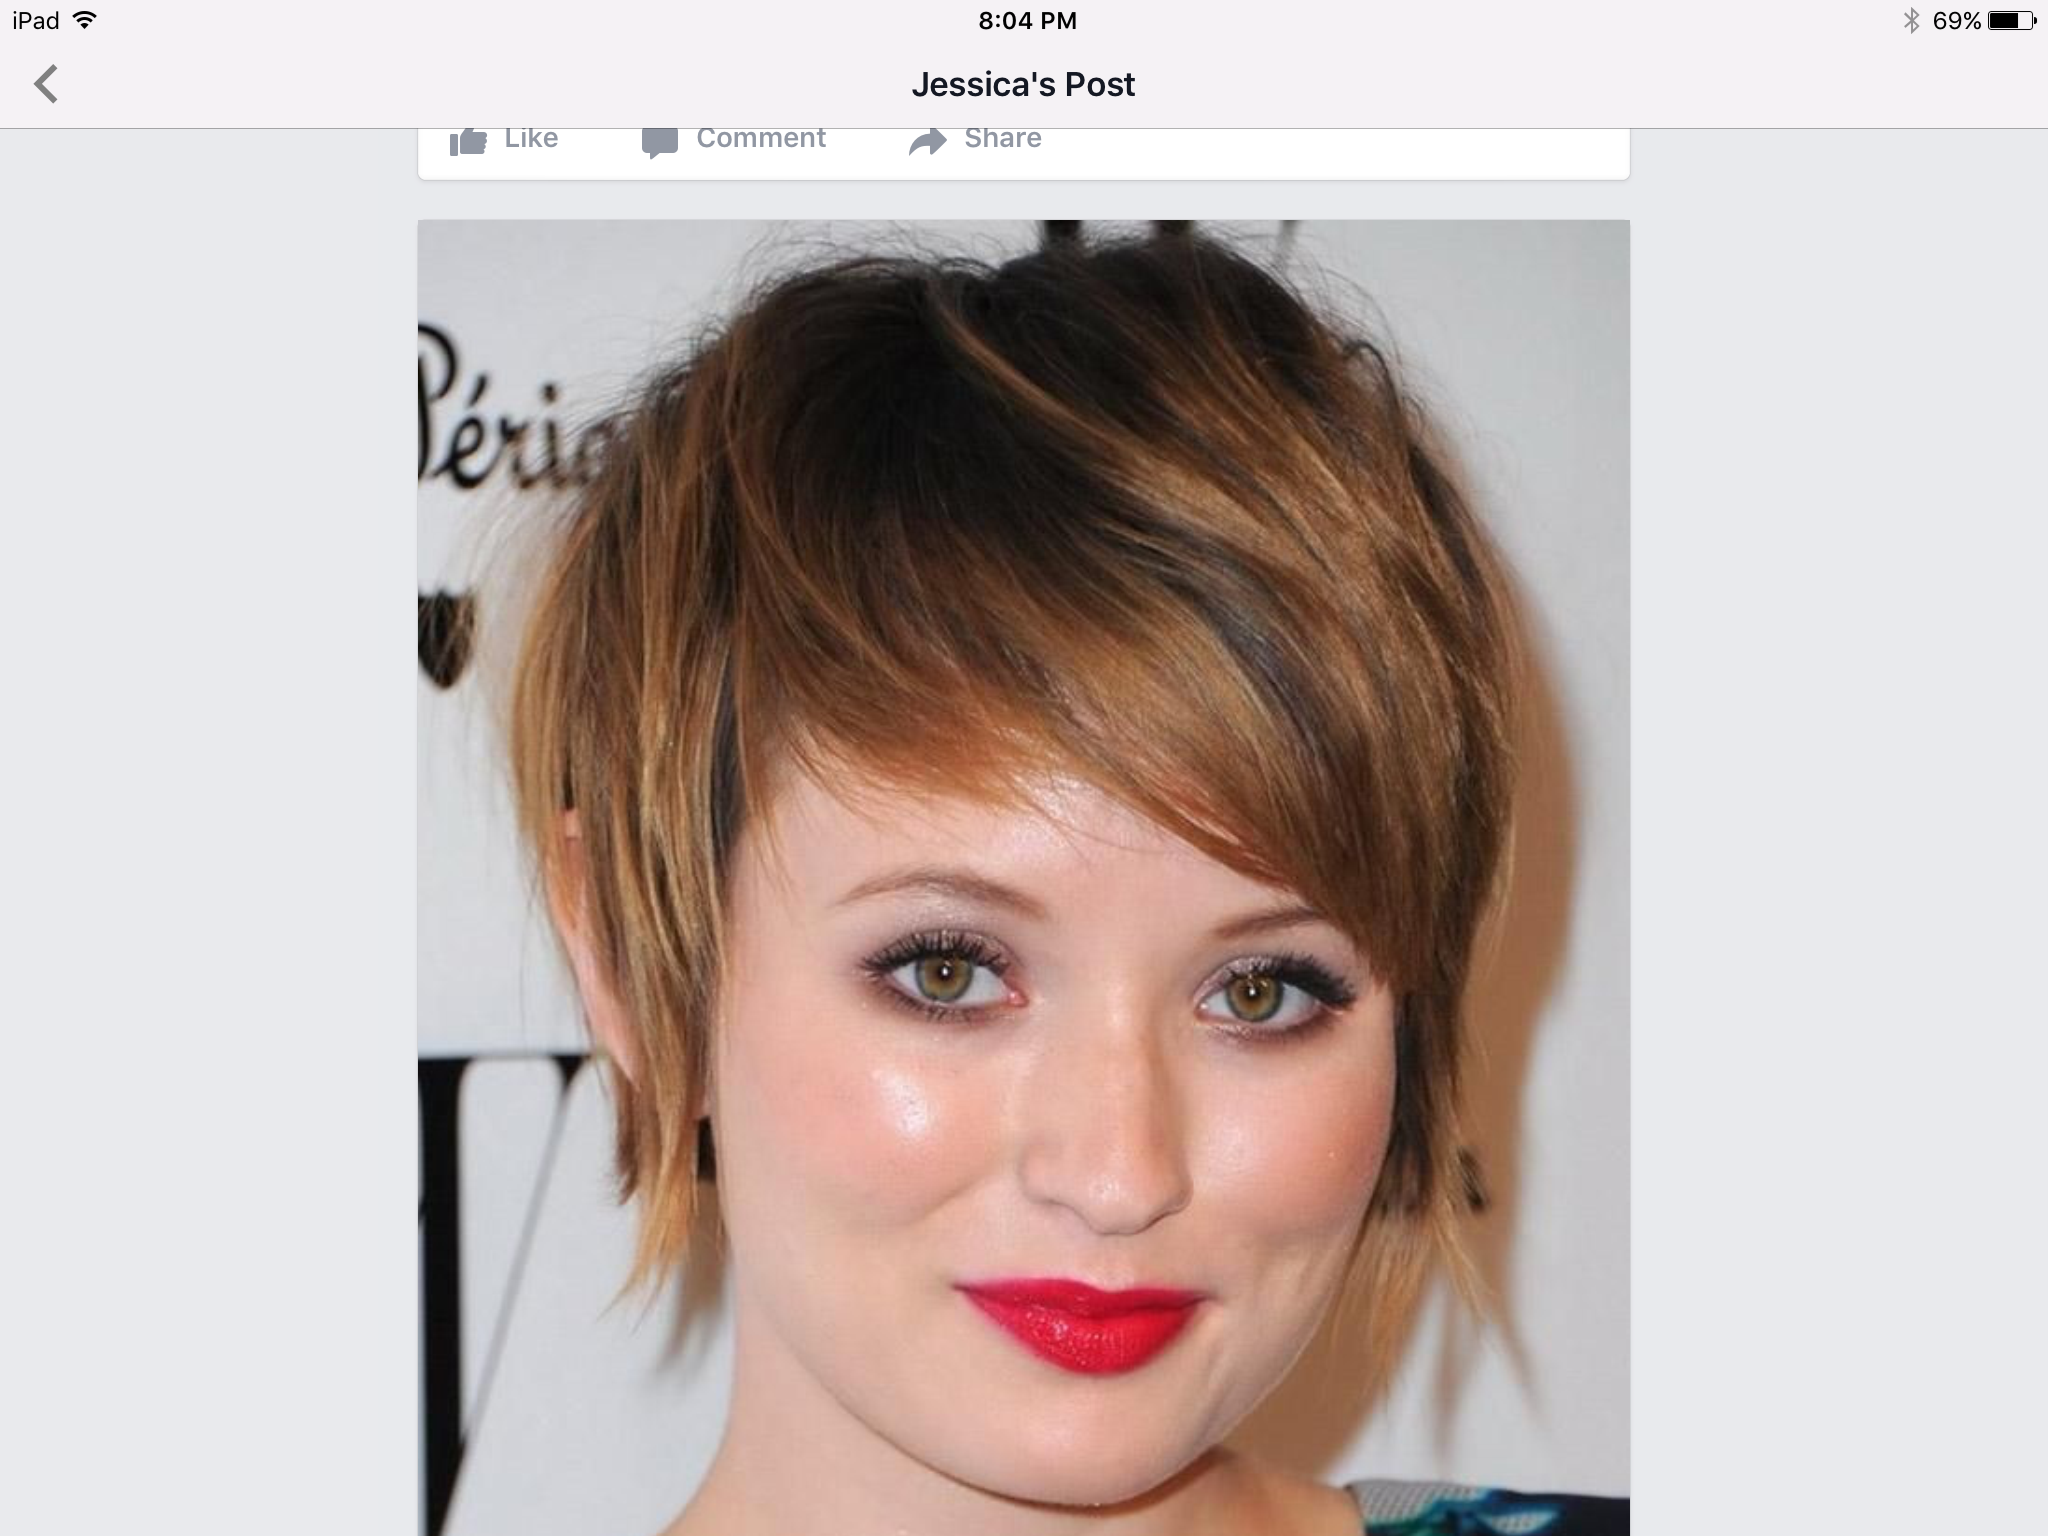 Pin by l nykoluk on pixie cut pinterest pixie cut and pixies